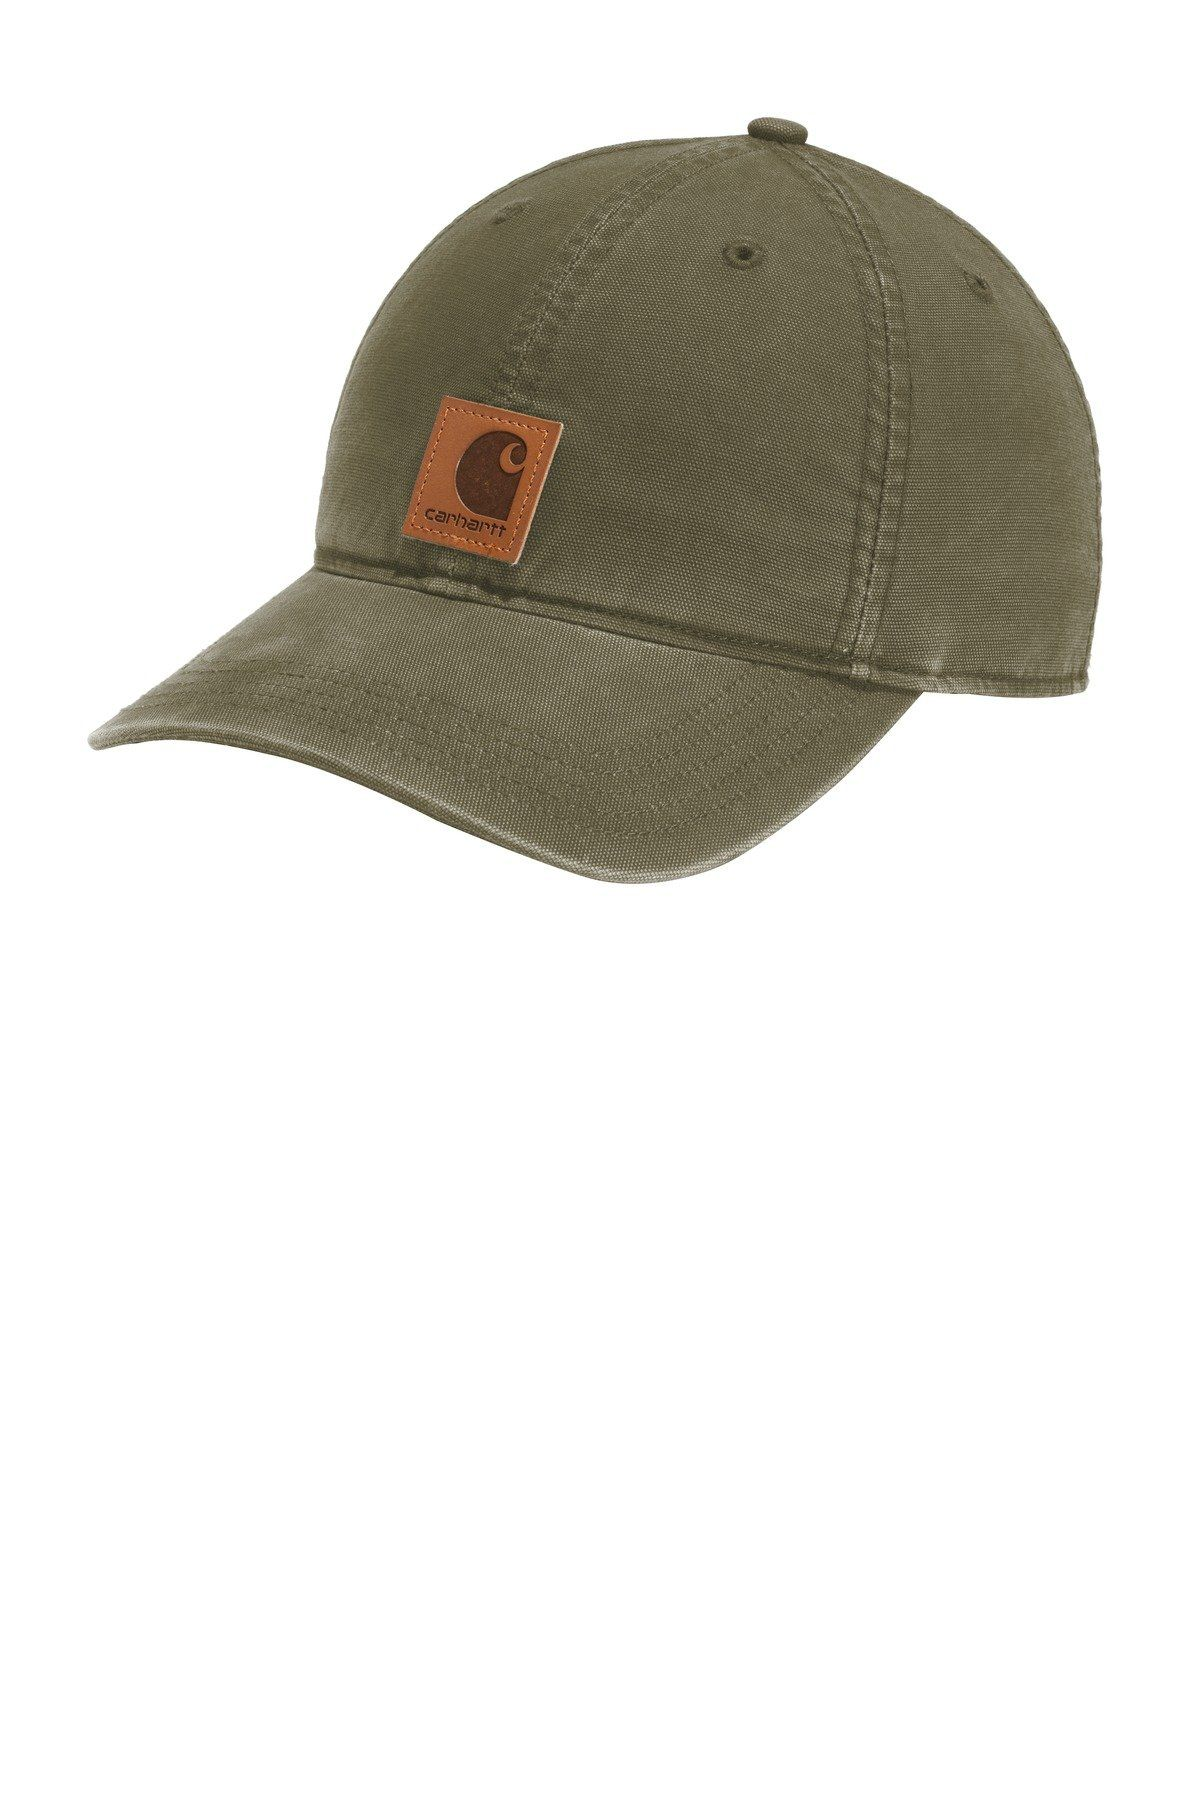 755cb26202 Carhartt Odessa Cap Ct100289 Army Green in 2019 | Products | Army ...